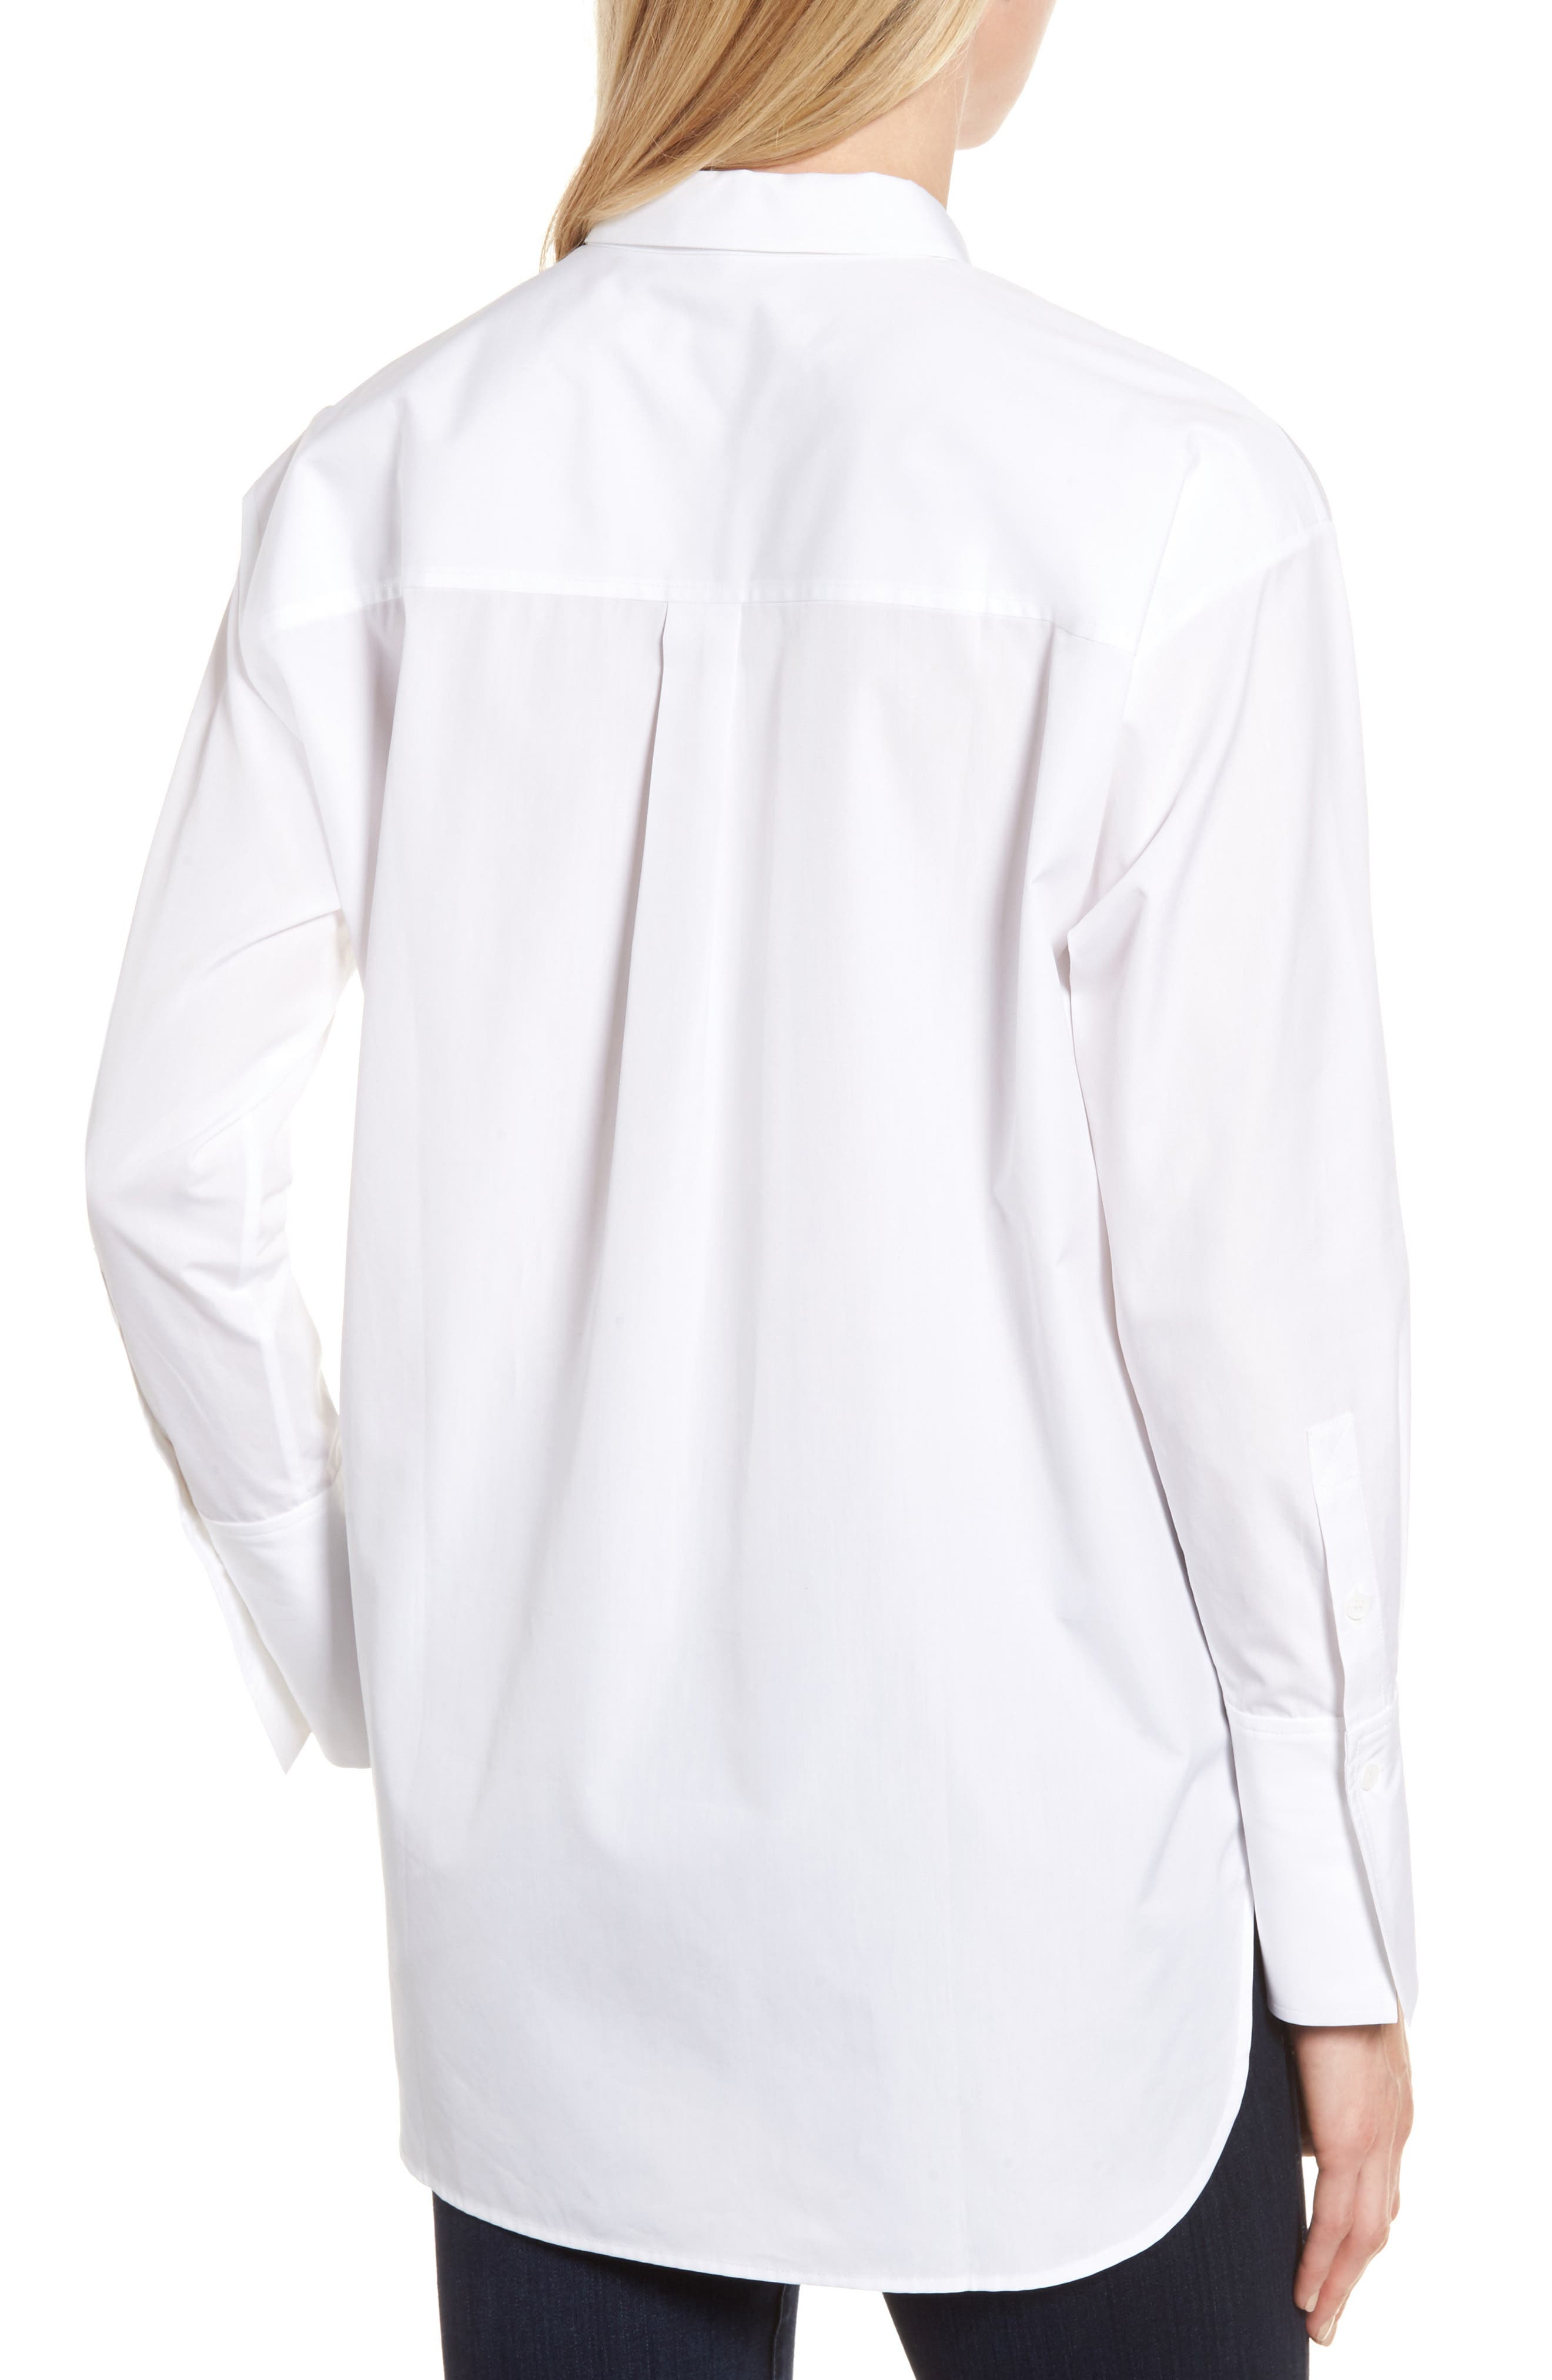 Poplin Shirt,                             Alternate thumbnail 2, color,                             White